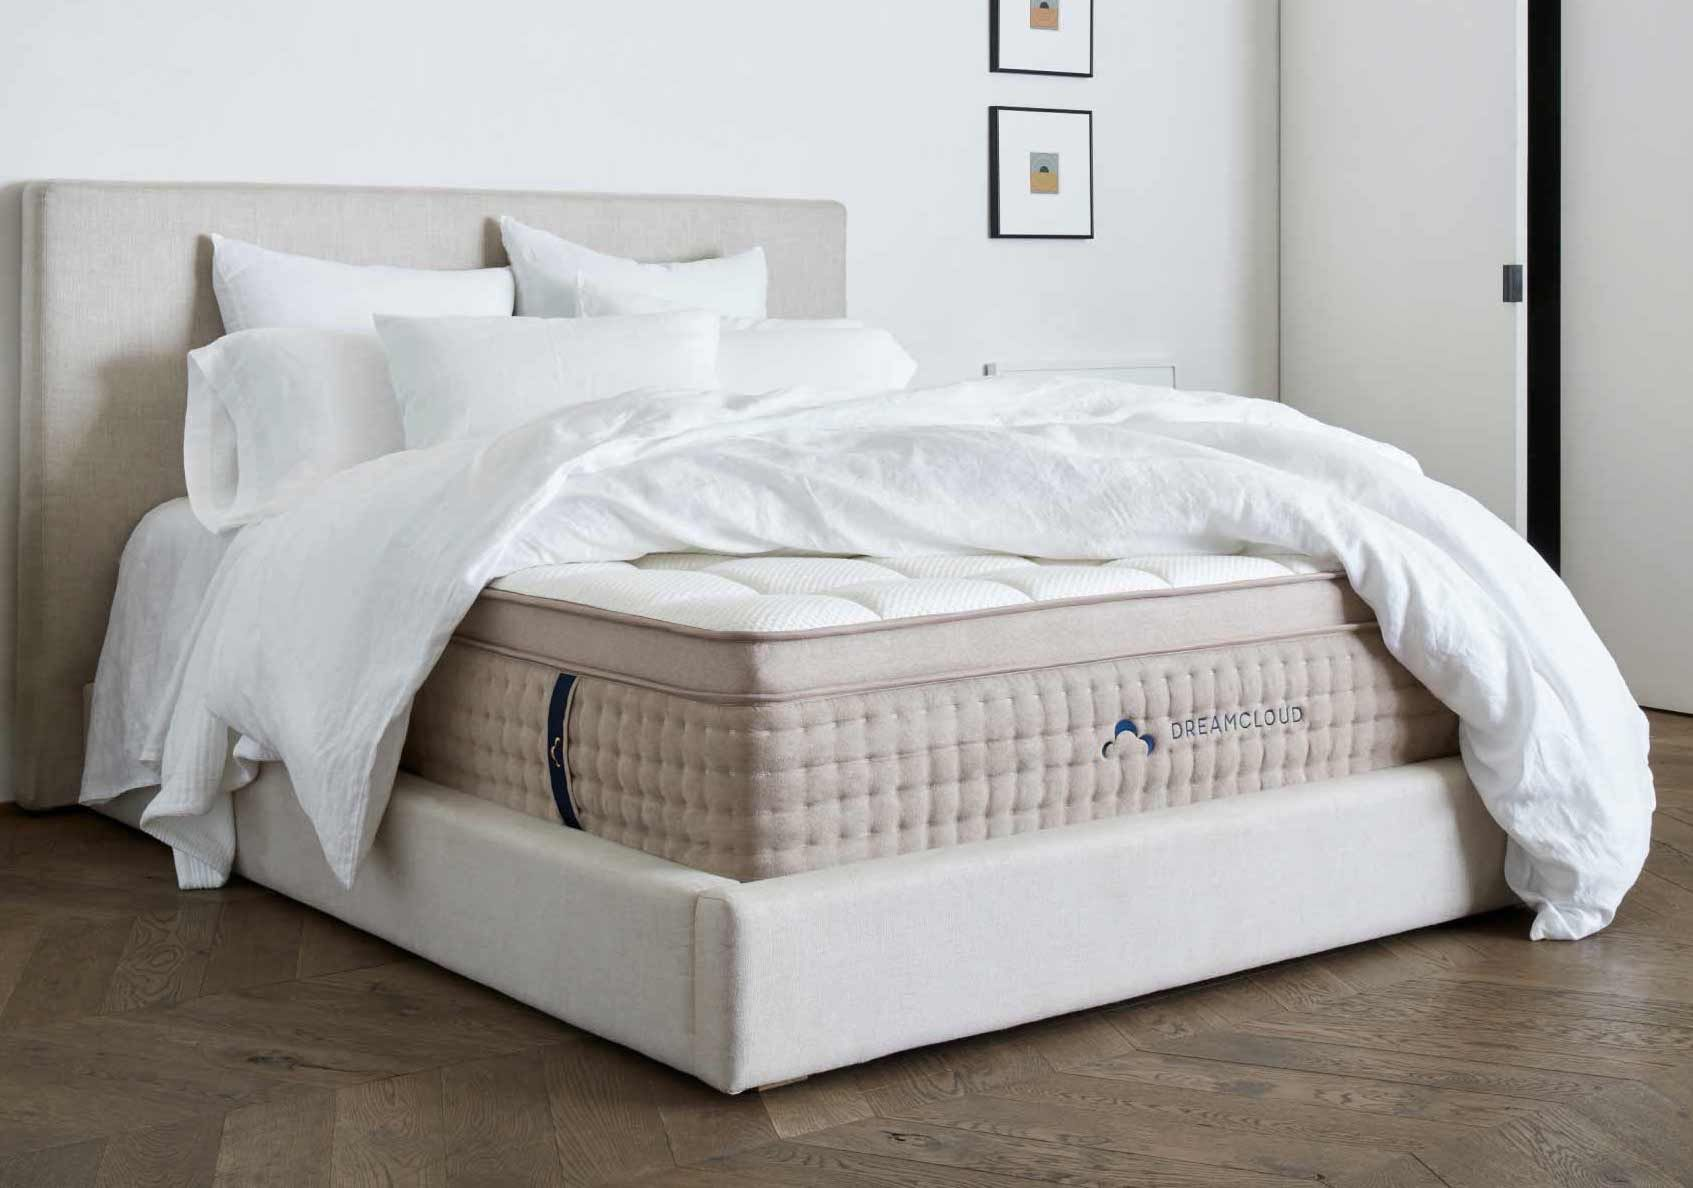 Best Rated Mattresses You Can